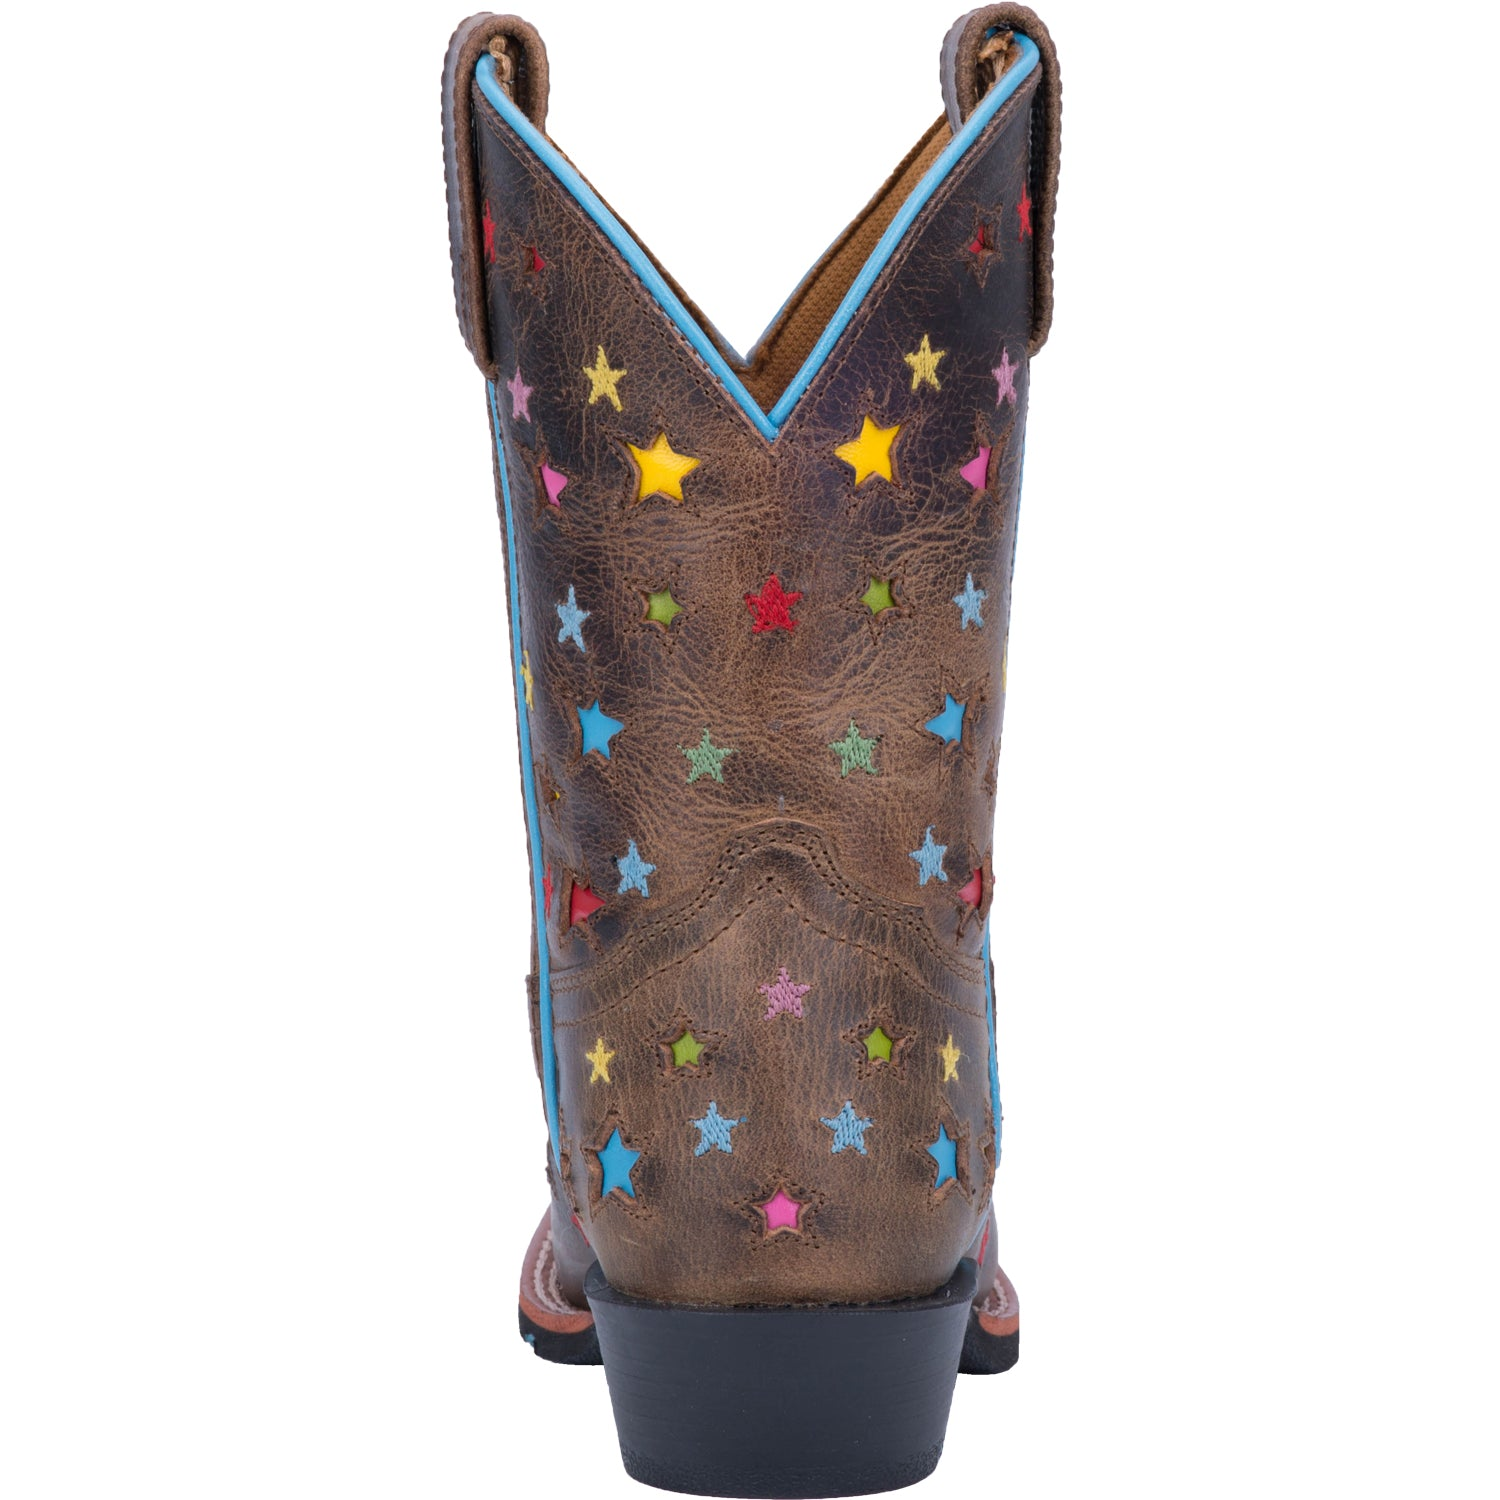 STARLETT LEATHER YOUTH BOOT 4197207867434